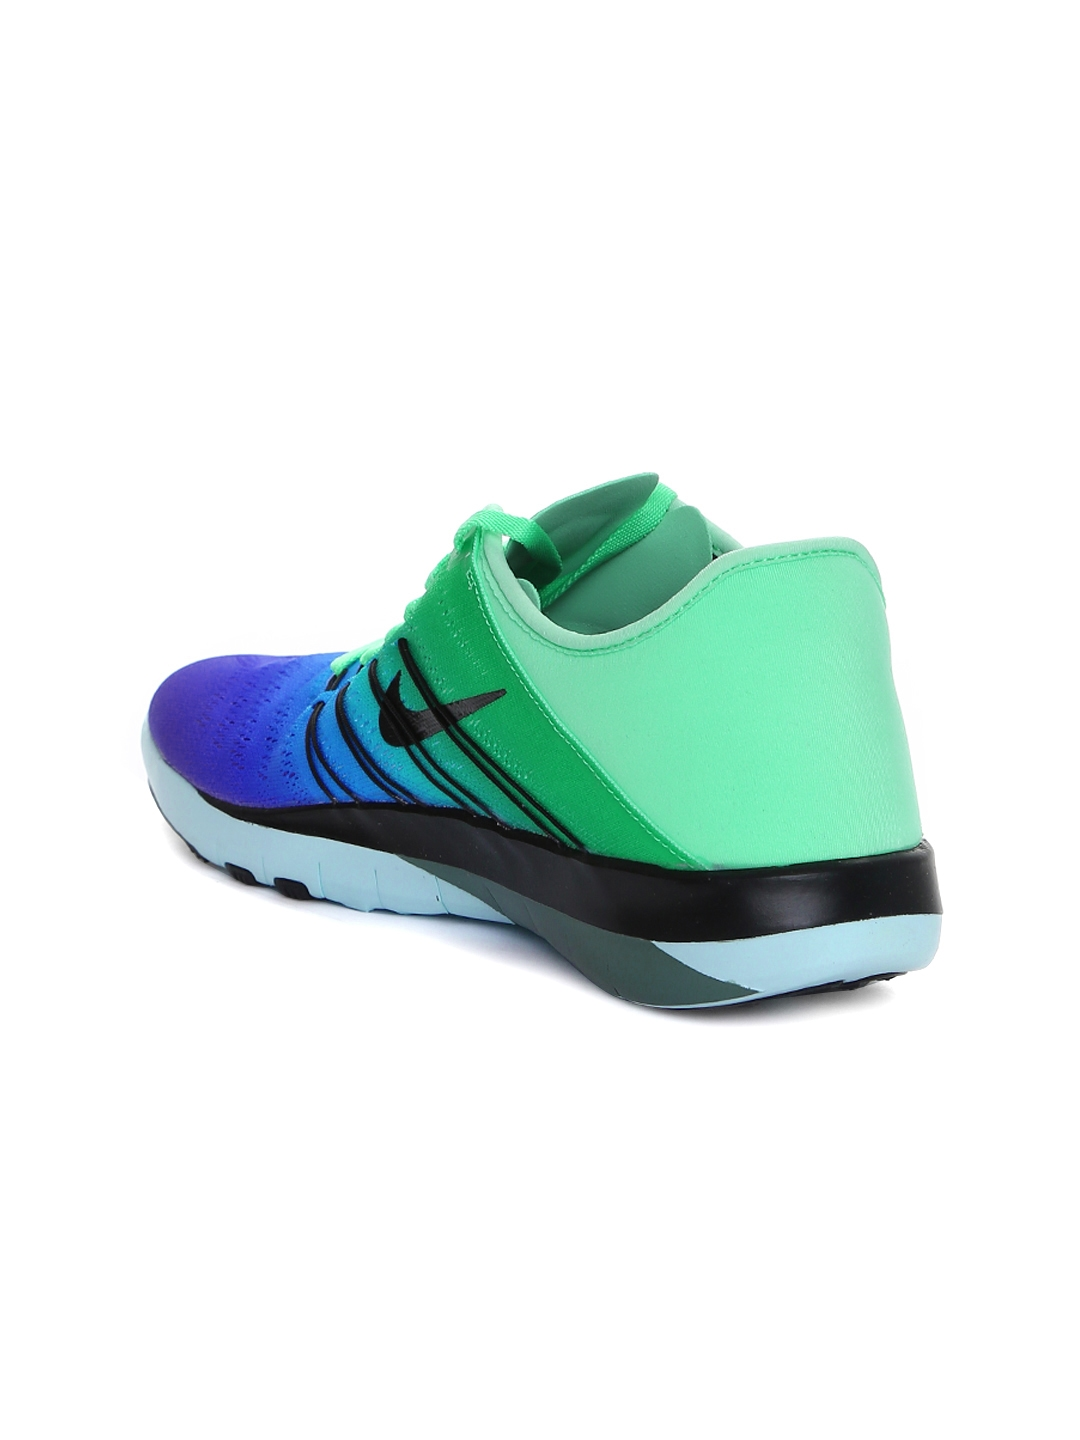 6d26cb244a0f8 Buy Nike Women Blue   Green Free TR 6 Training Shoes - Sports Shoes ...